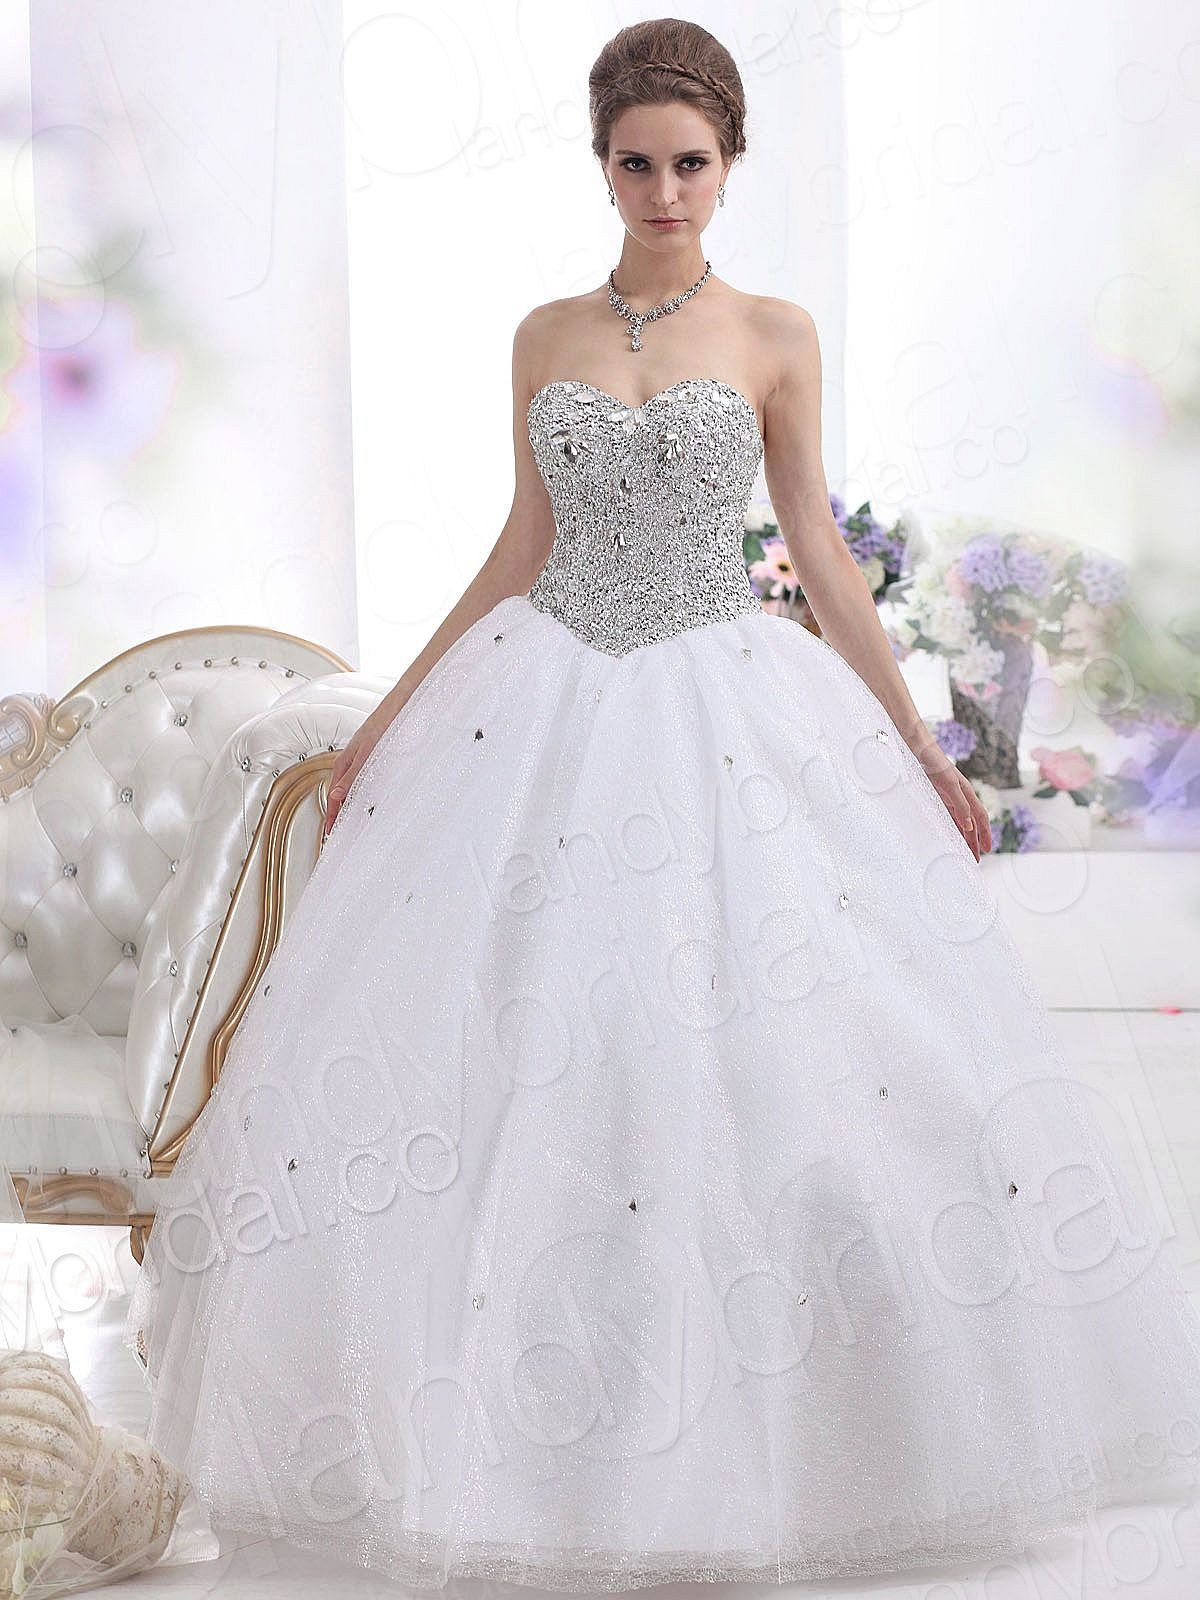 Strapless Ball Gown Wedding Dresses With Floor Length